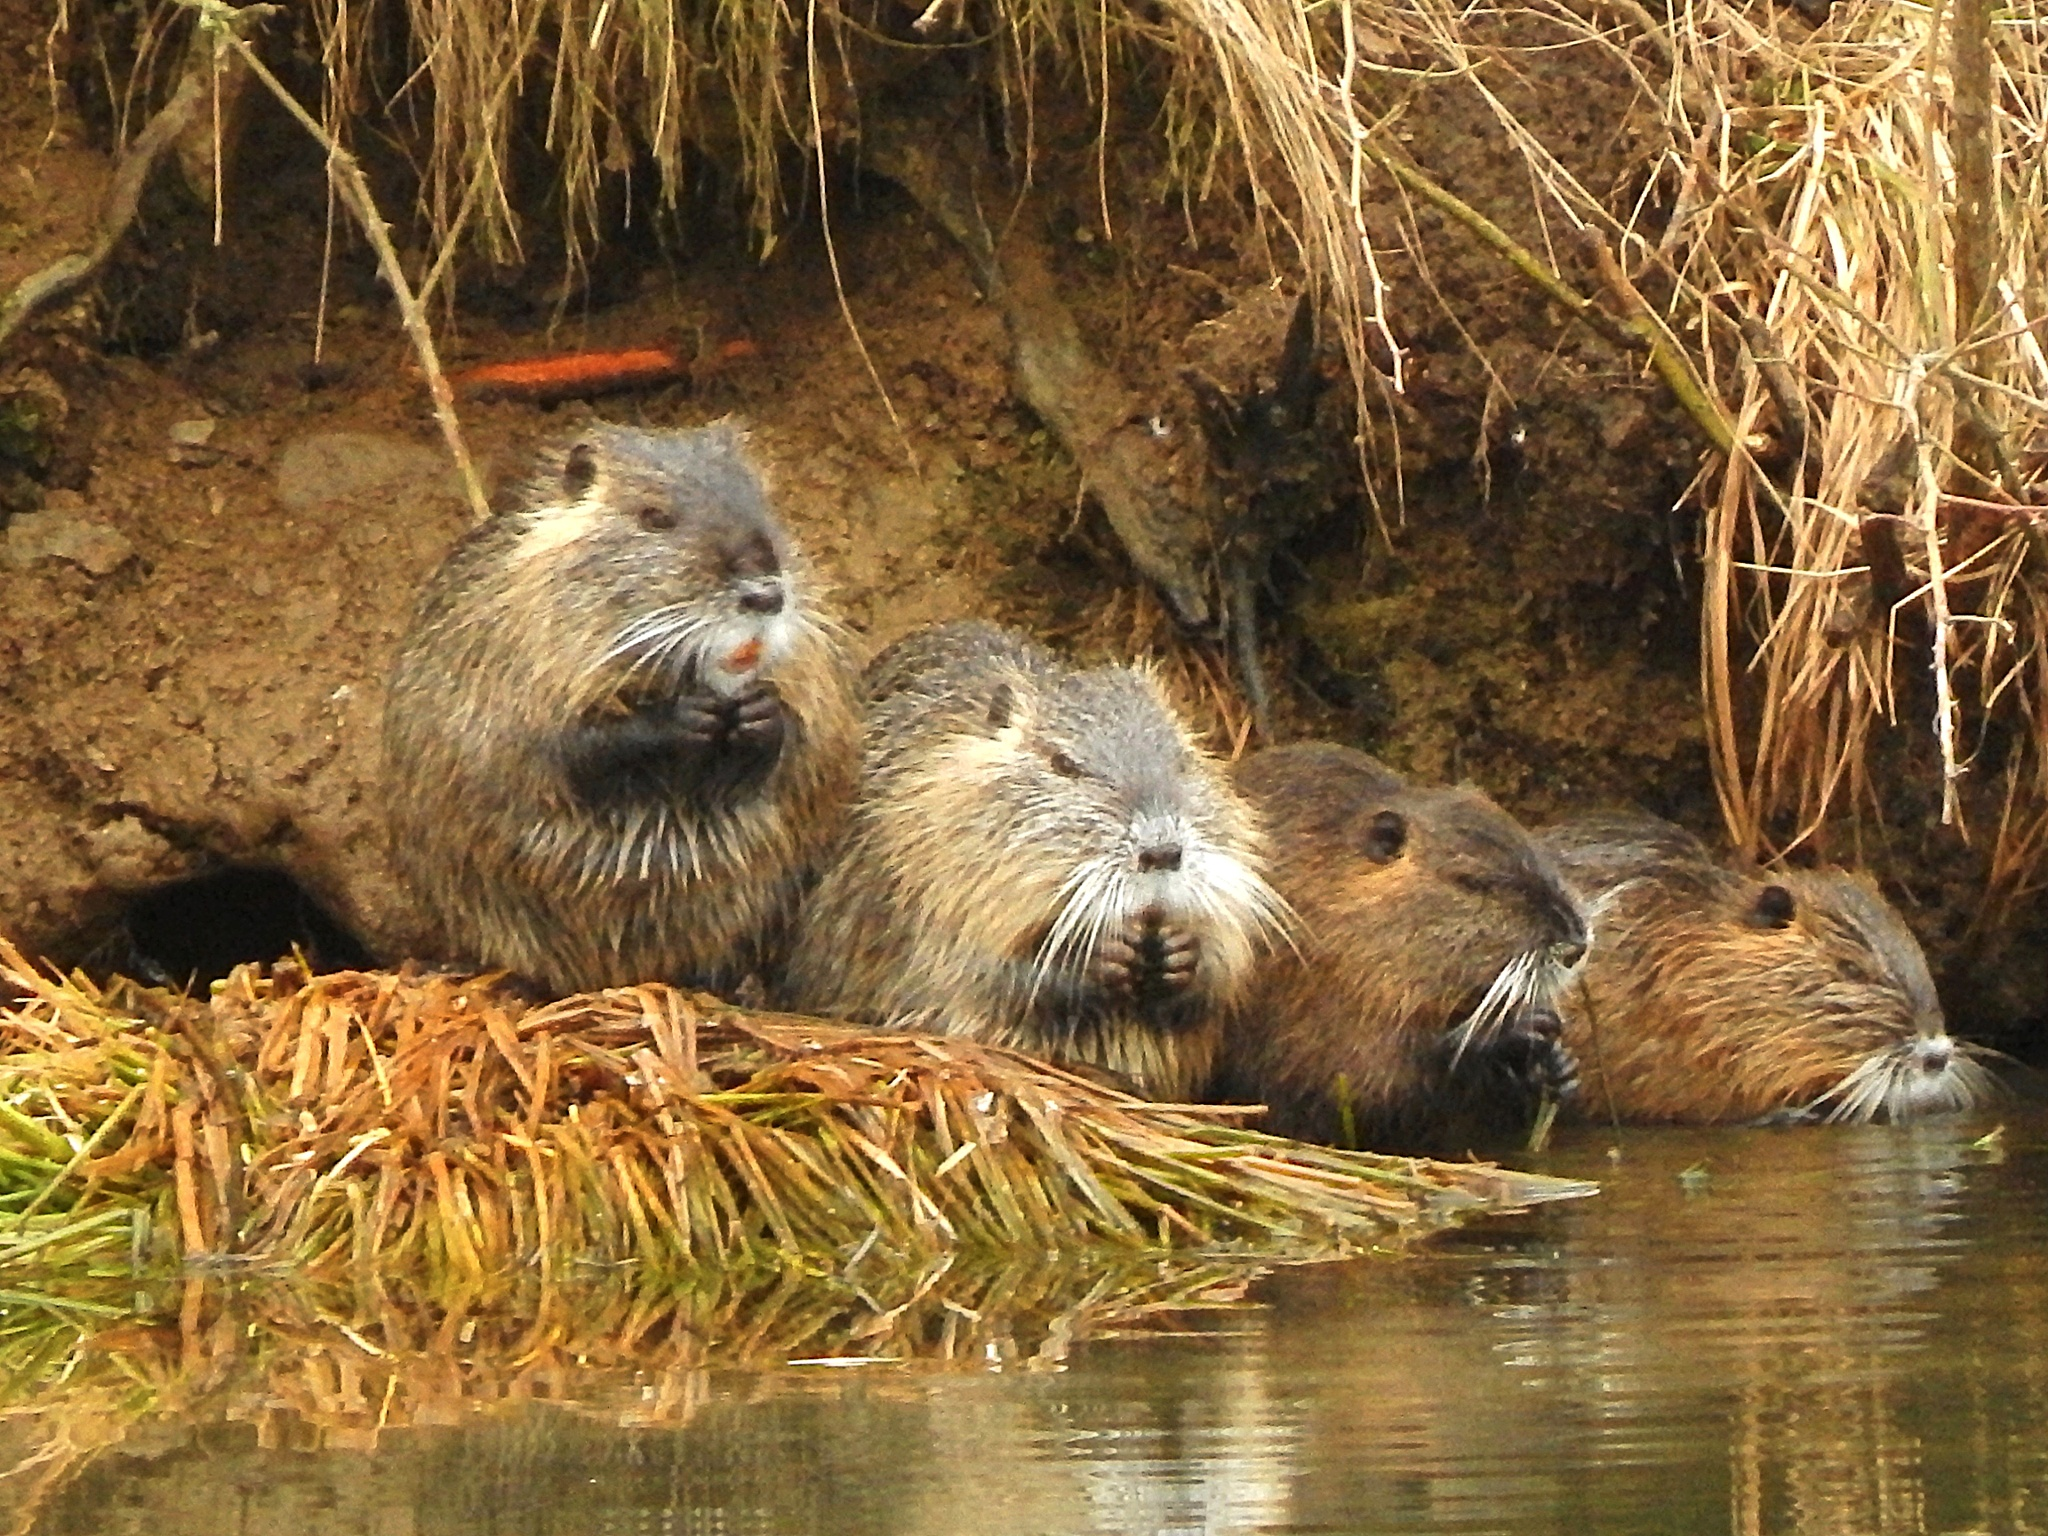 Muskrat family by lachim